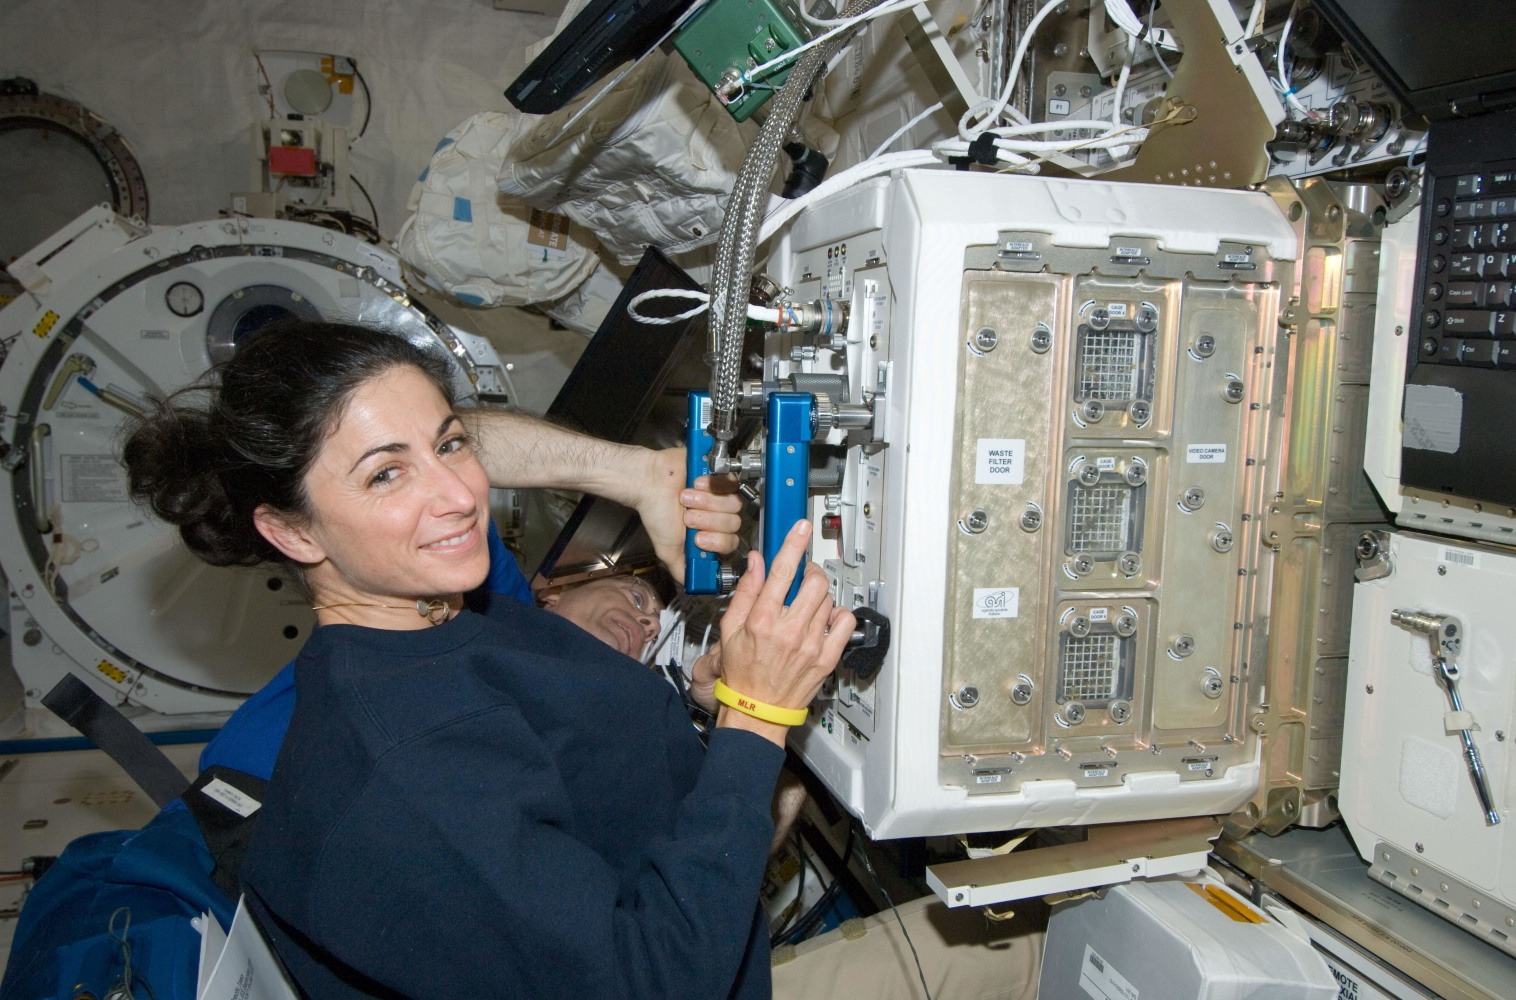 Astro Mouse Study Suggests Spaceflight Could Be Bad For